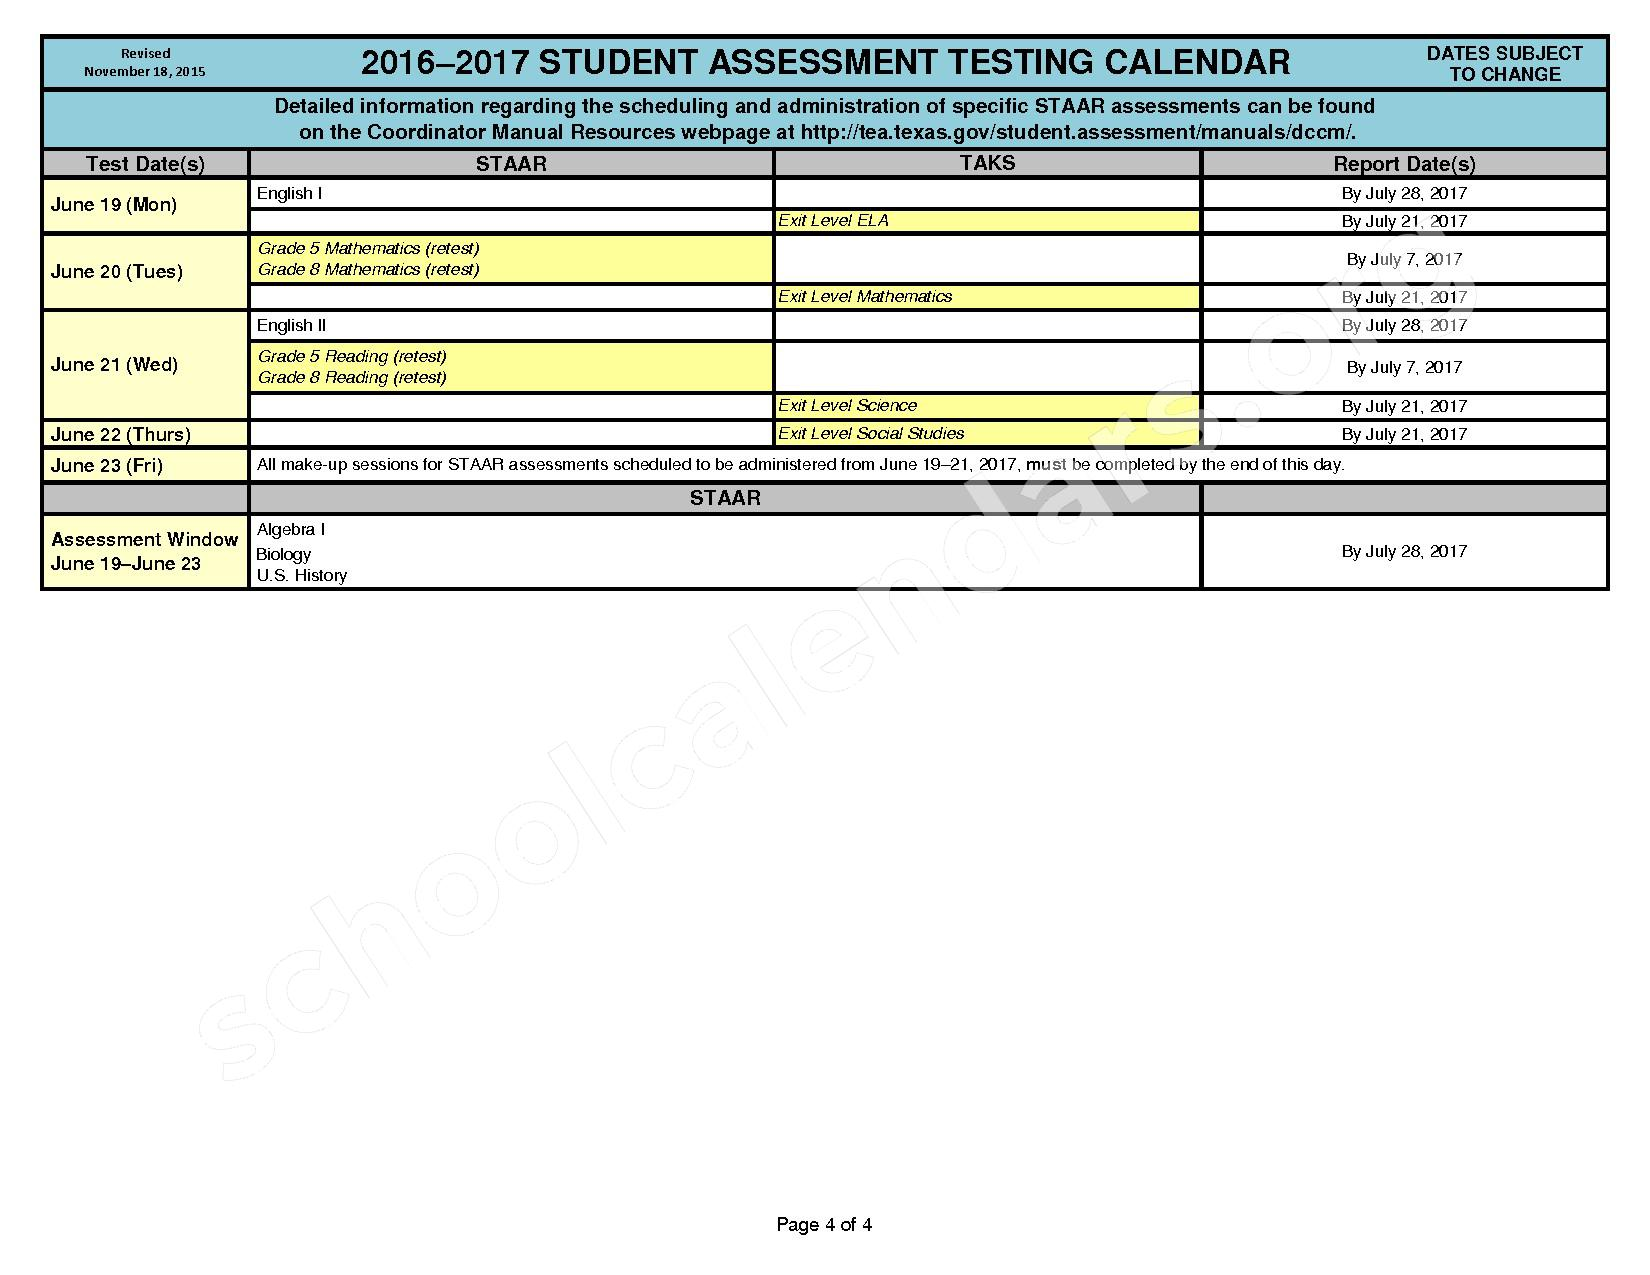 2016 - 2017 State Testing Calendar – Crosby Independent School District – page 4